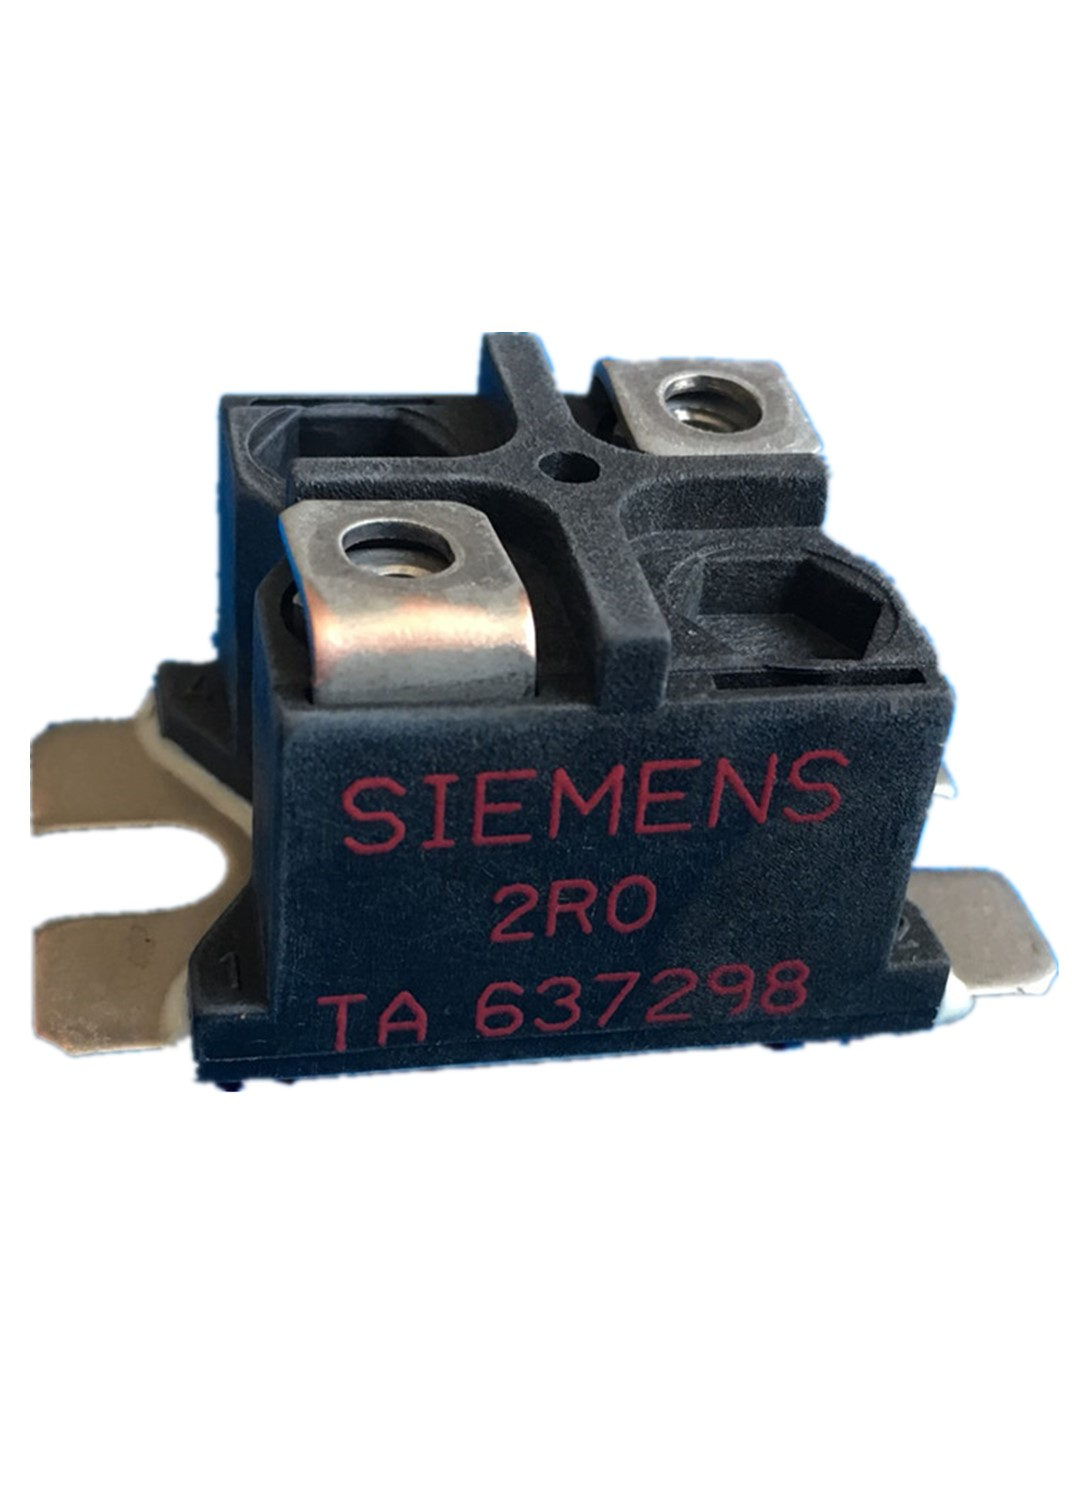 TA637298 2R0 Resistance 2RO Siemens Inverter 70 Protection 6SY7000-0AB18